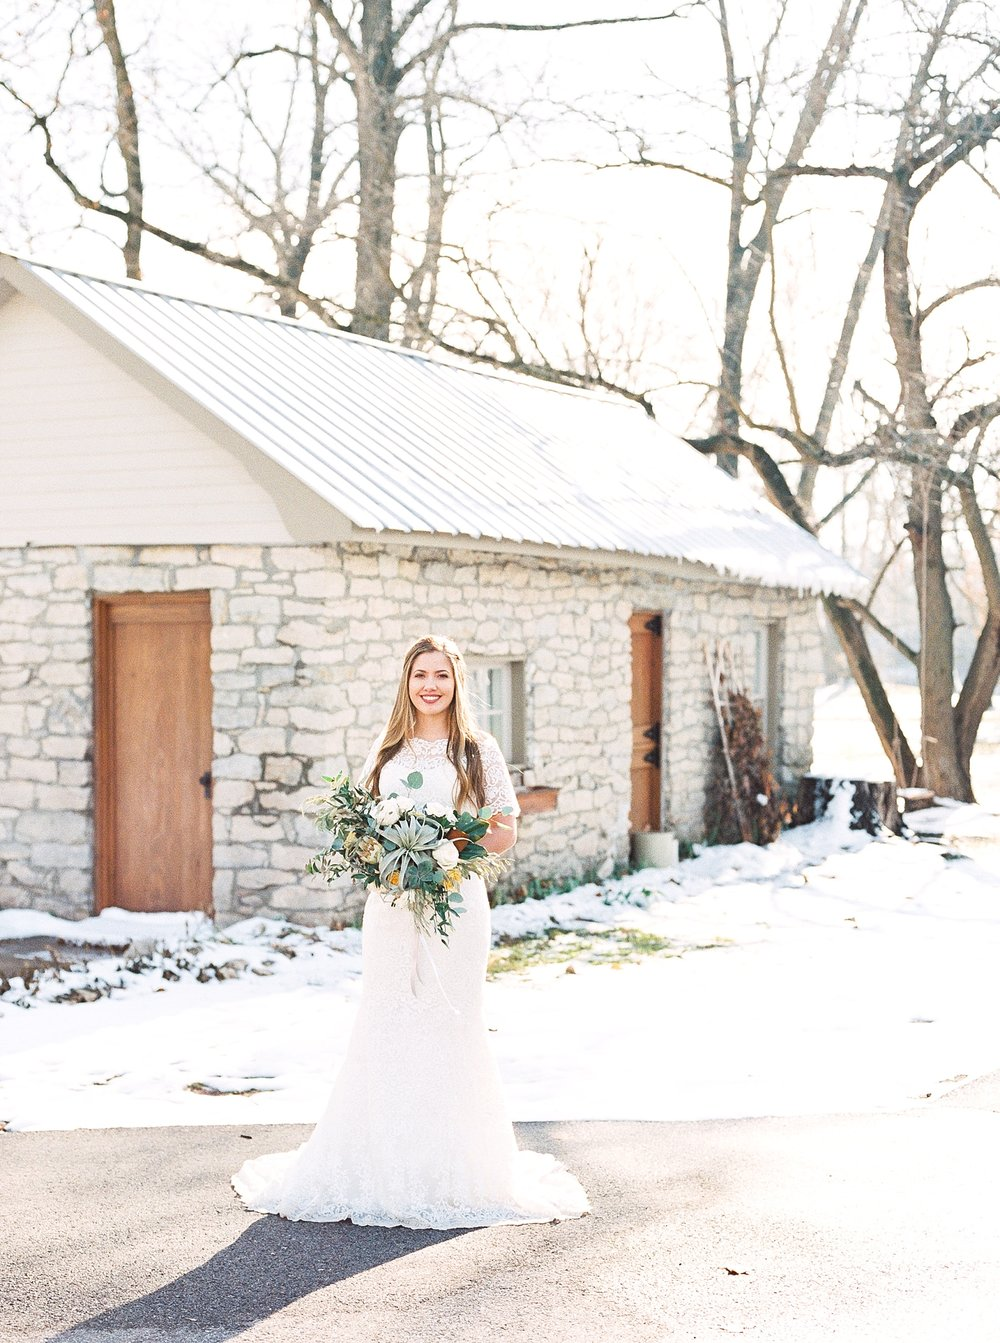 Snowy Winter Wedding at Wildcliff Events Lake With Earthy Jewel Tones and Organic Refined Style by Kelsi Kliethermes Photography Kansas City Missouri Wedding Photographer_0137.jpg